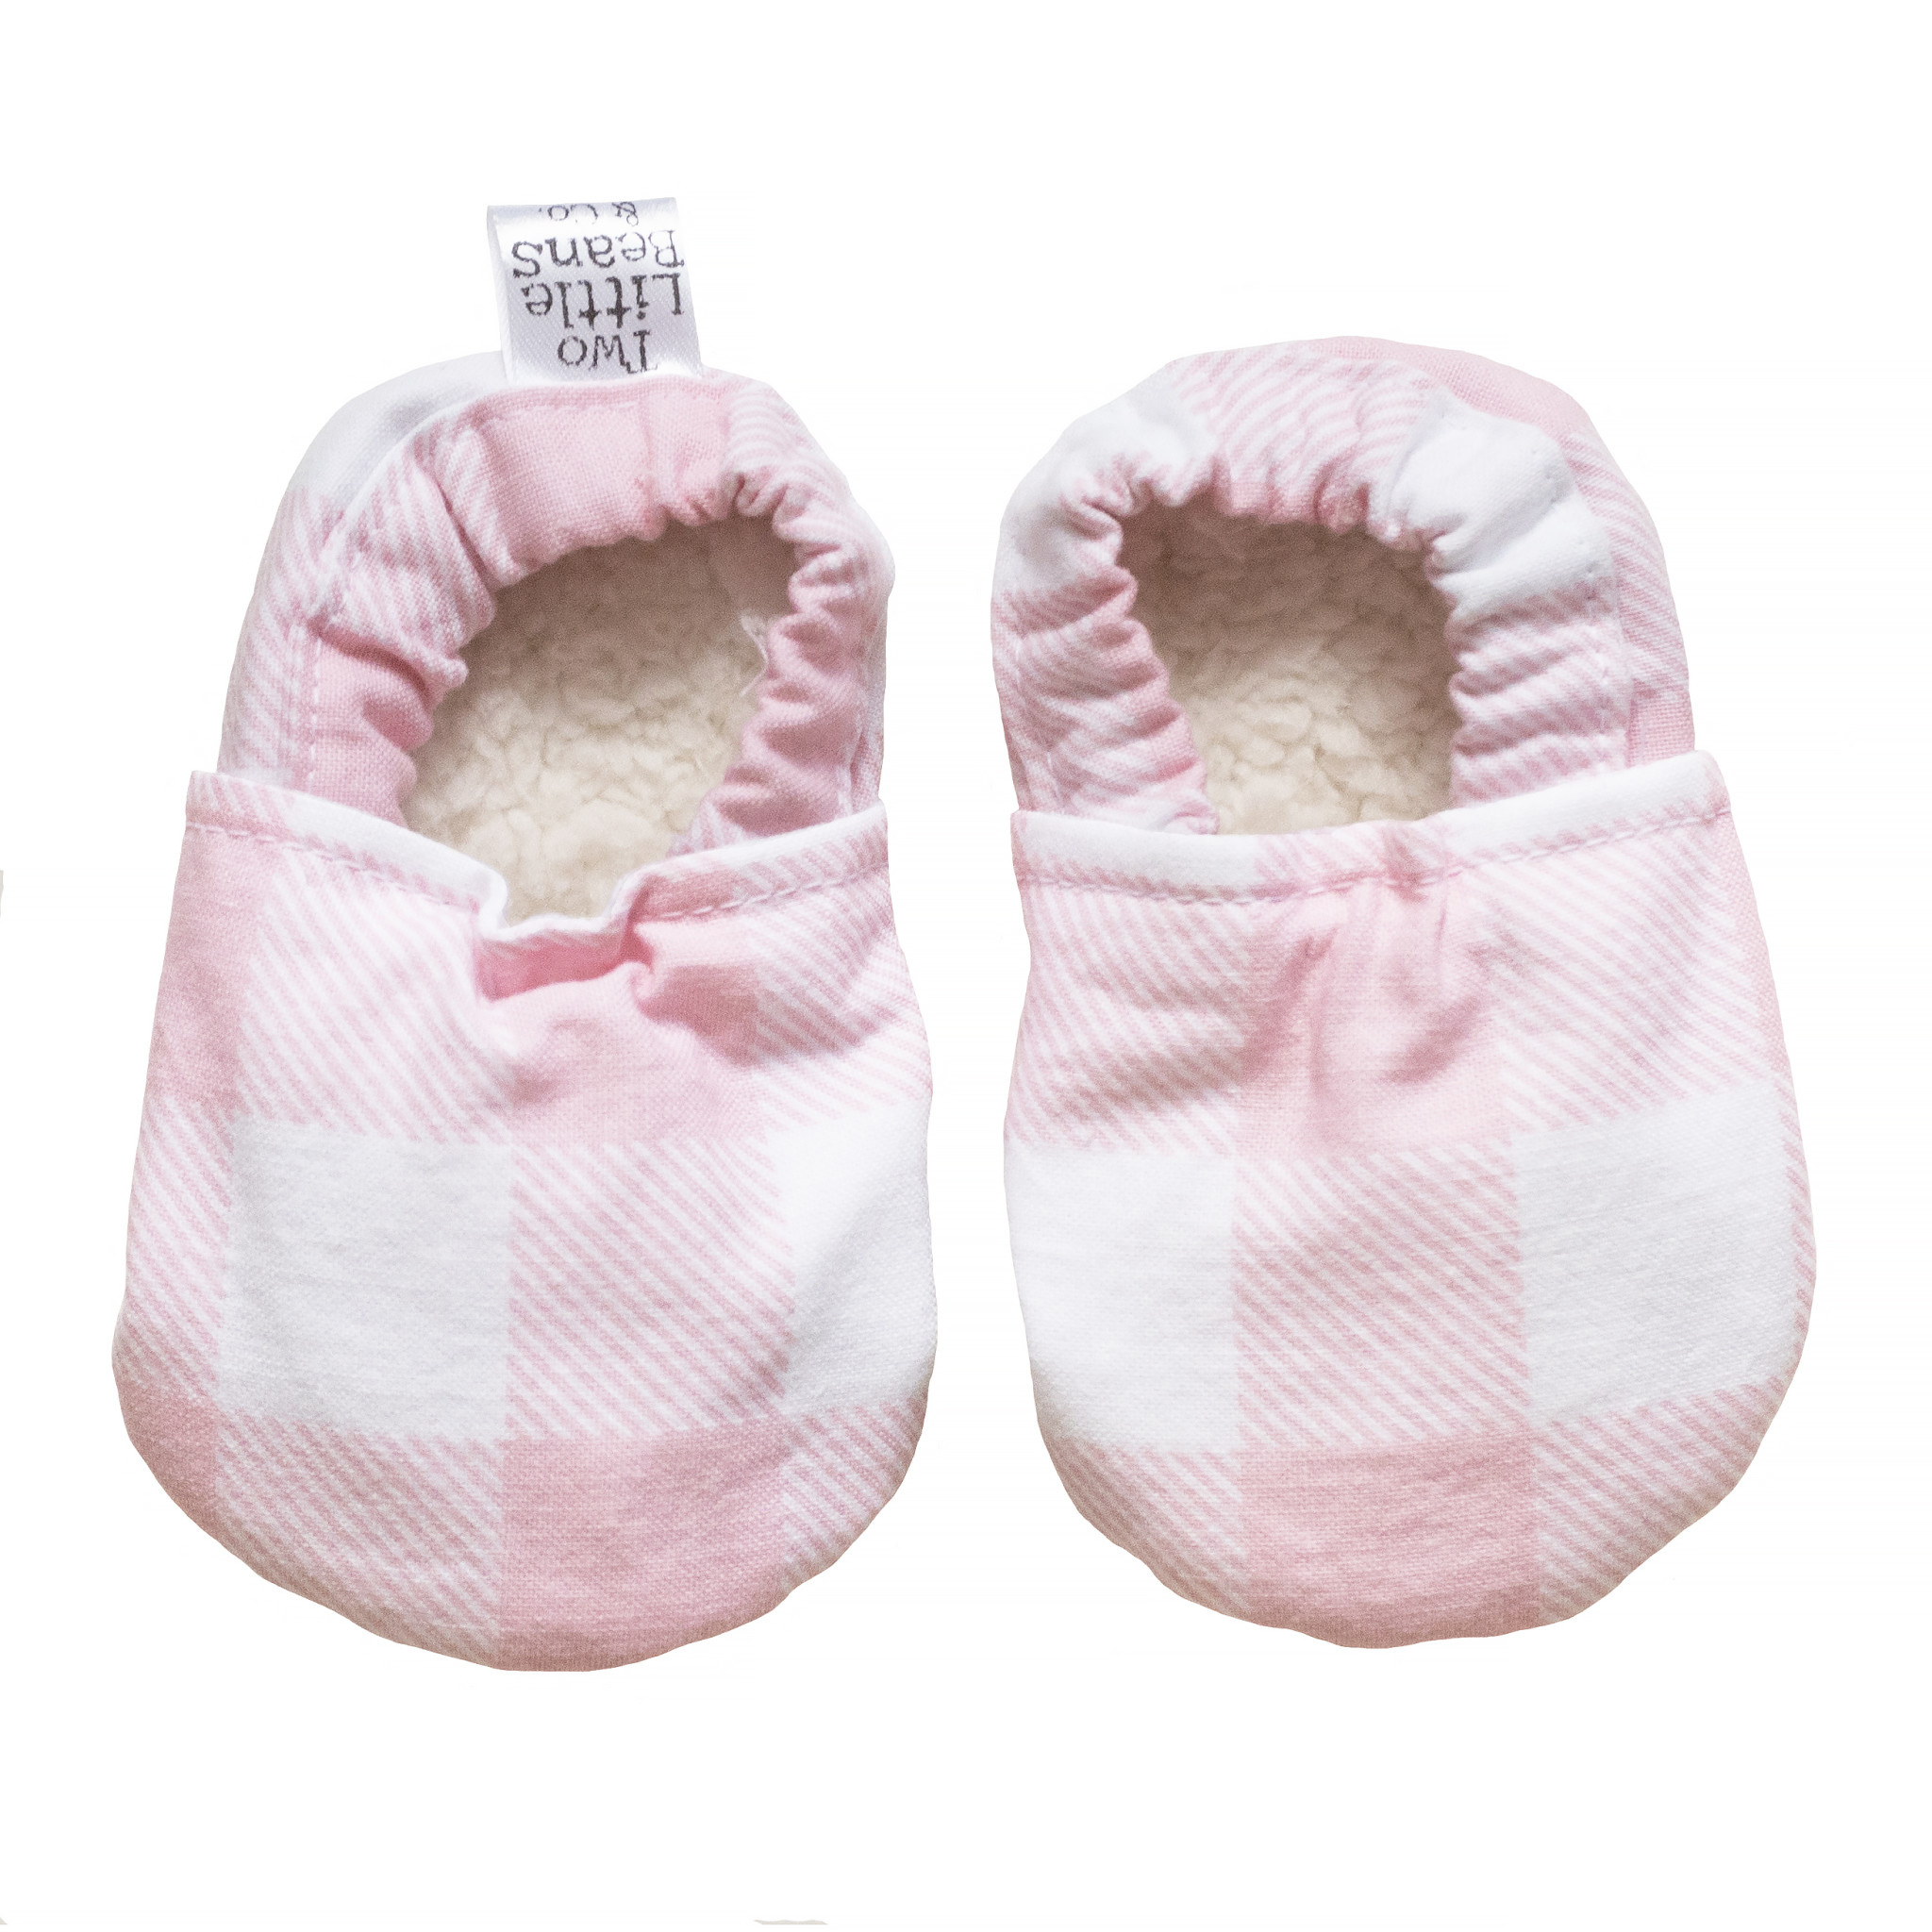 Two Little Beans Baby Booties - Pink Gingham